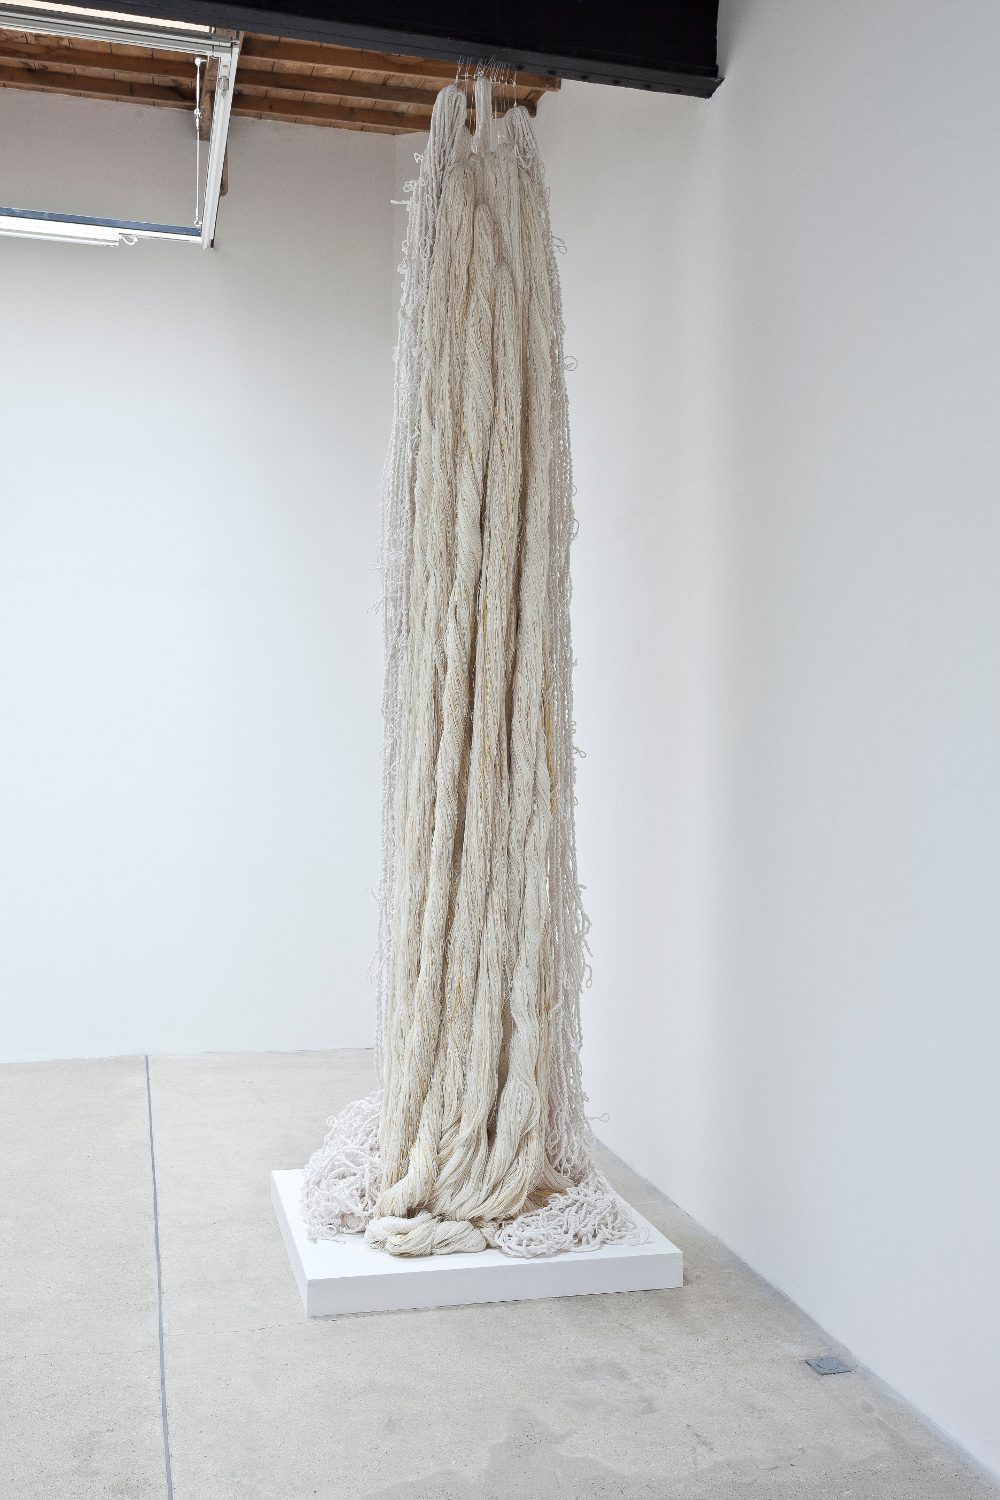 Assez Sheila Hicks - Archives for Women Artists, Research and Exhibitions QB12